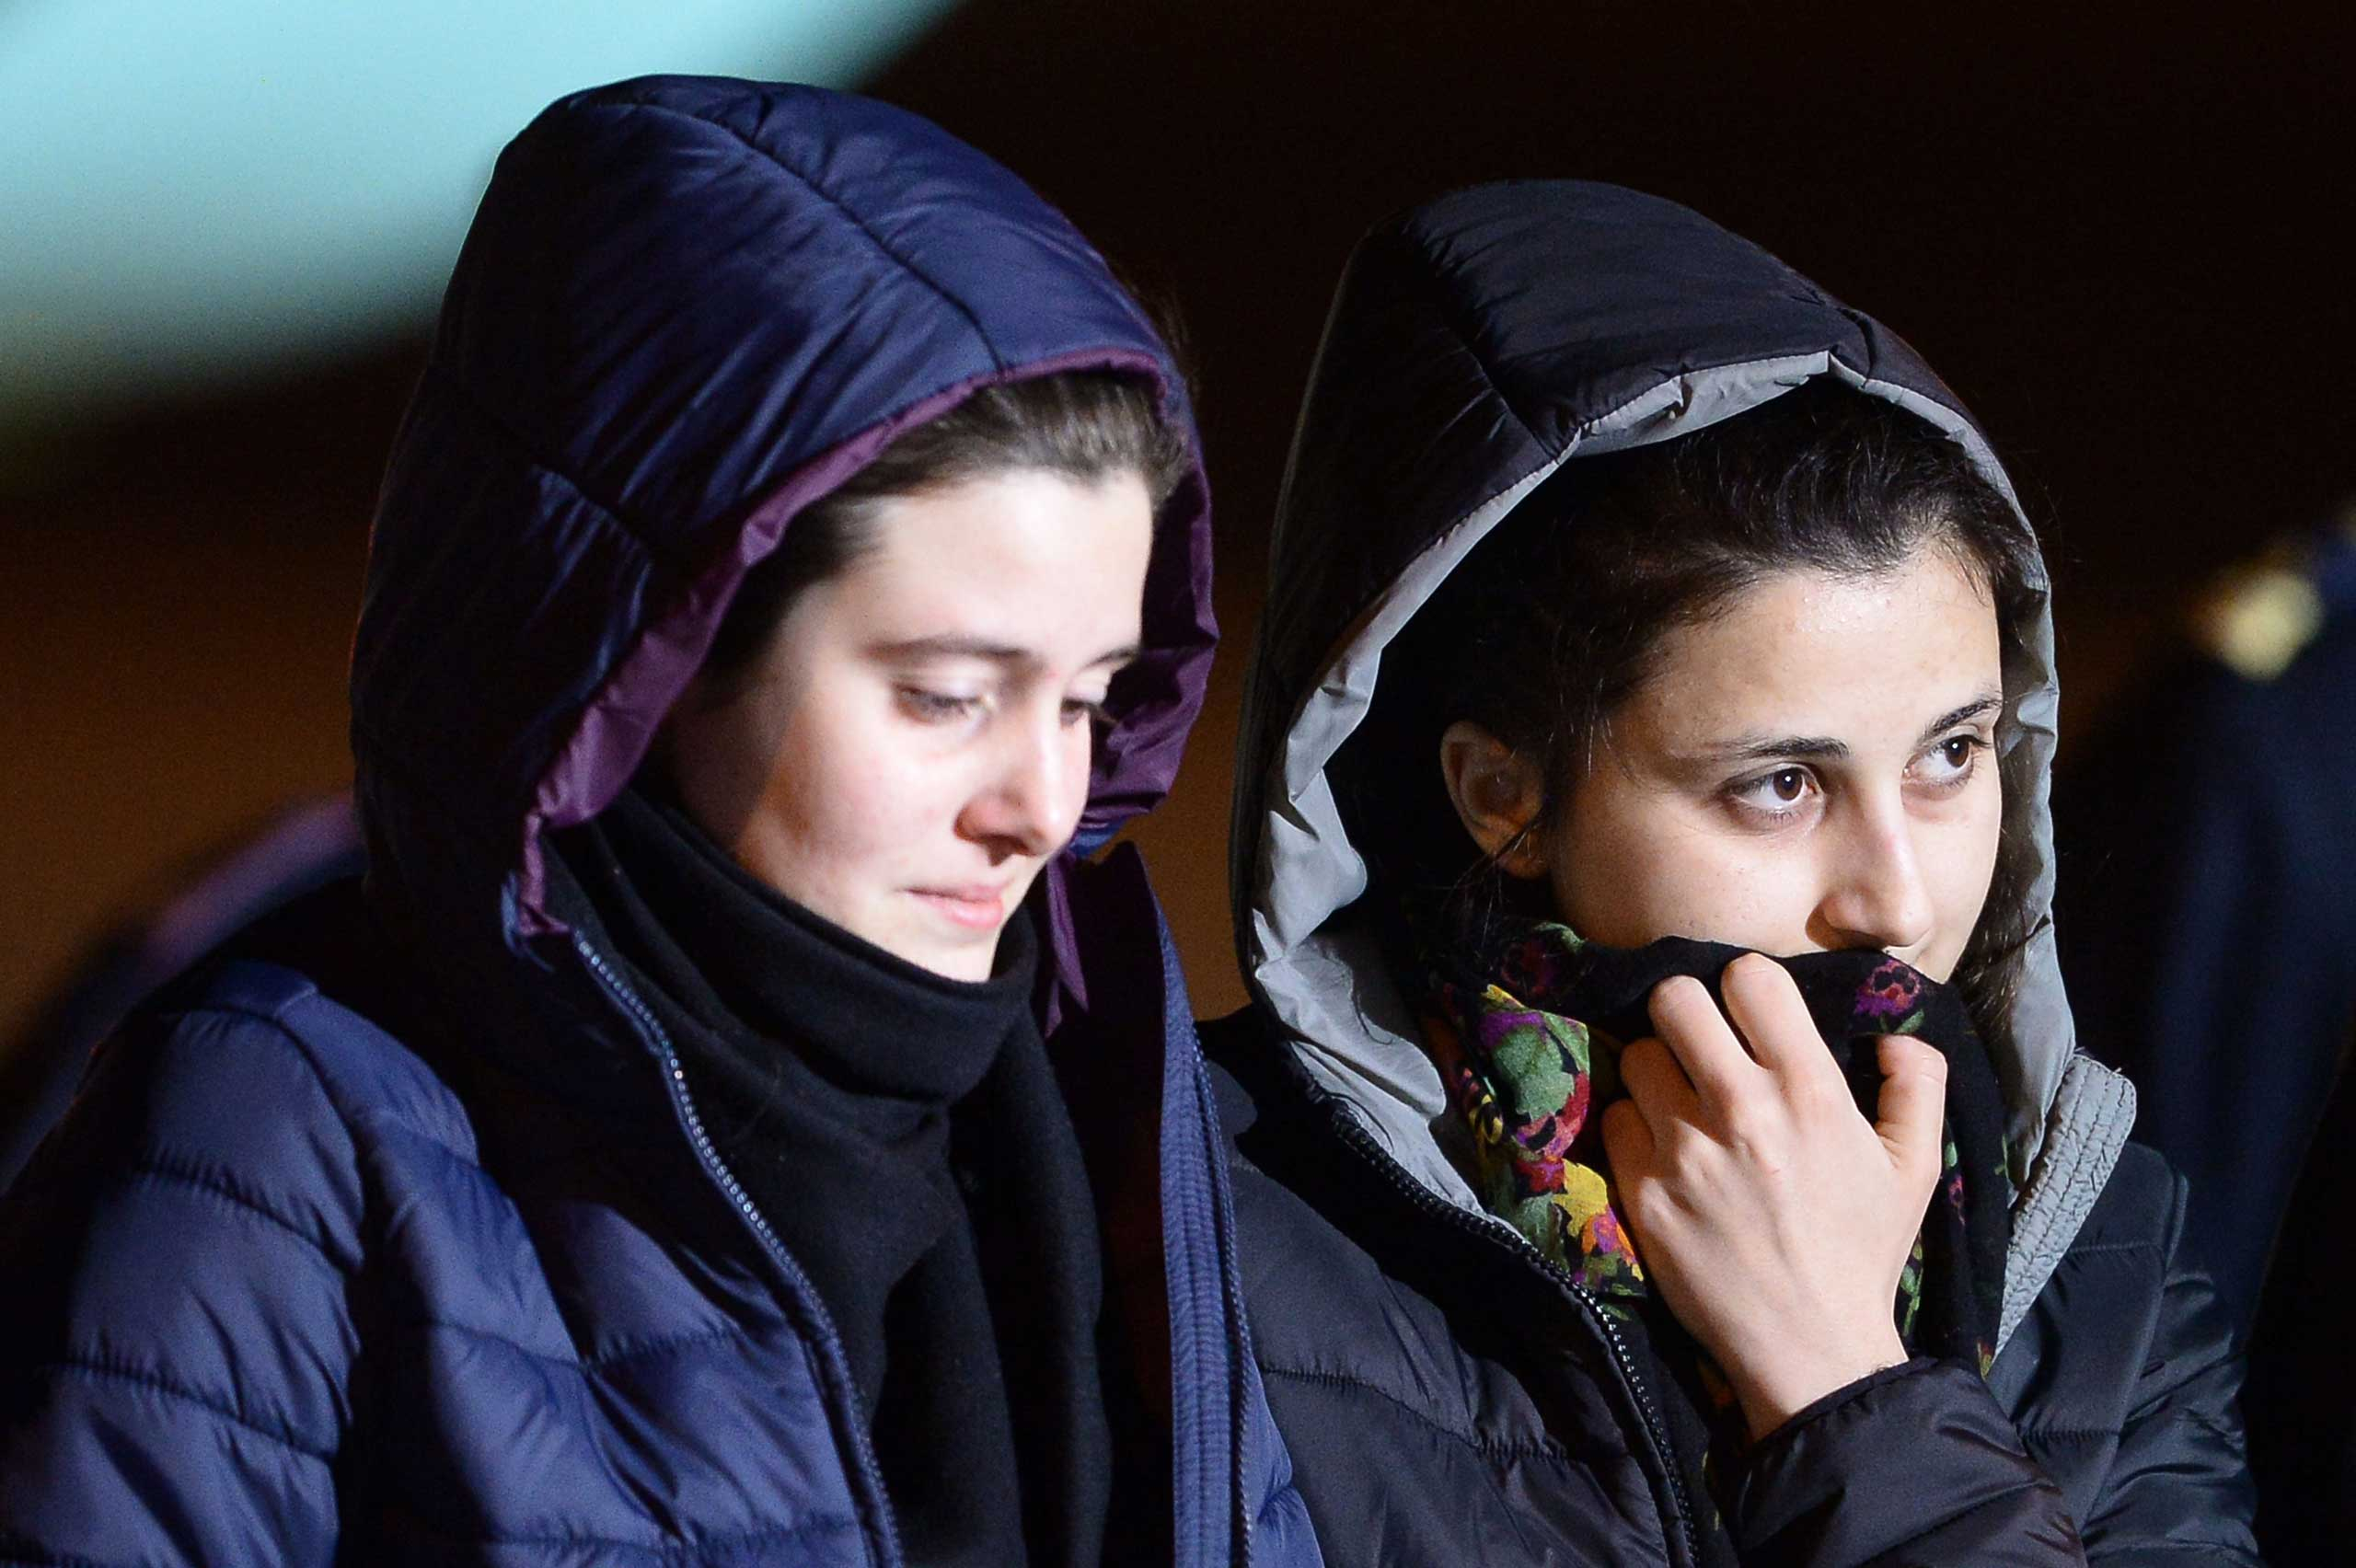 Italian aid workers abducted in Syria last summer, Greta Ramelli (L) and Vanessa Marzullo arrive at Ciampino airport in Rome early on Jan. 16, 2015.